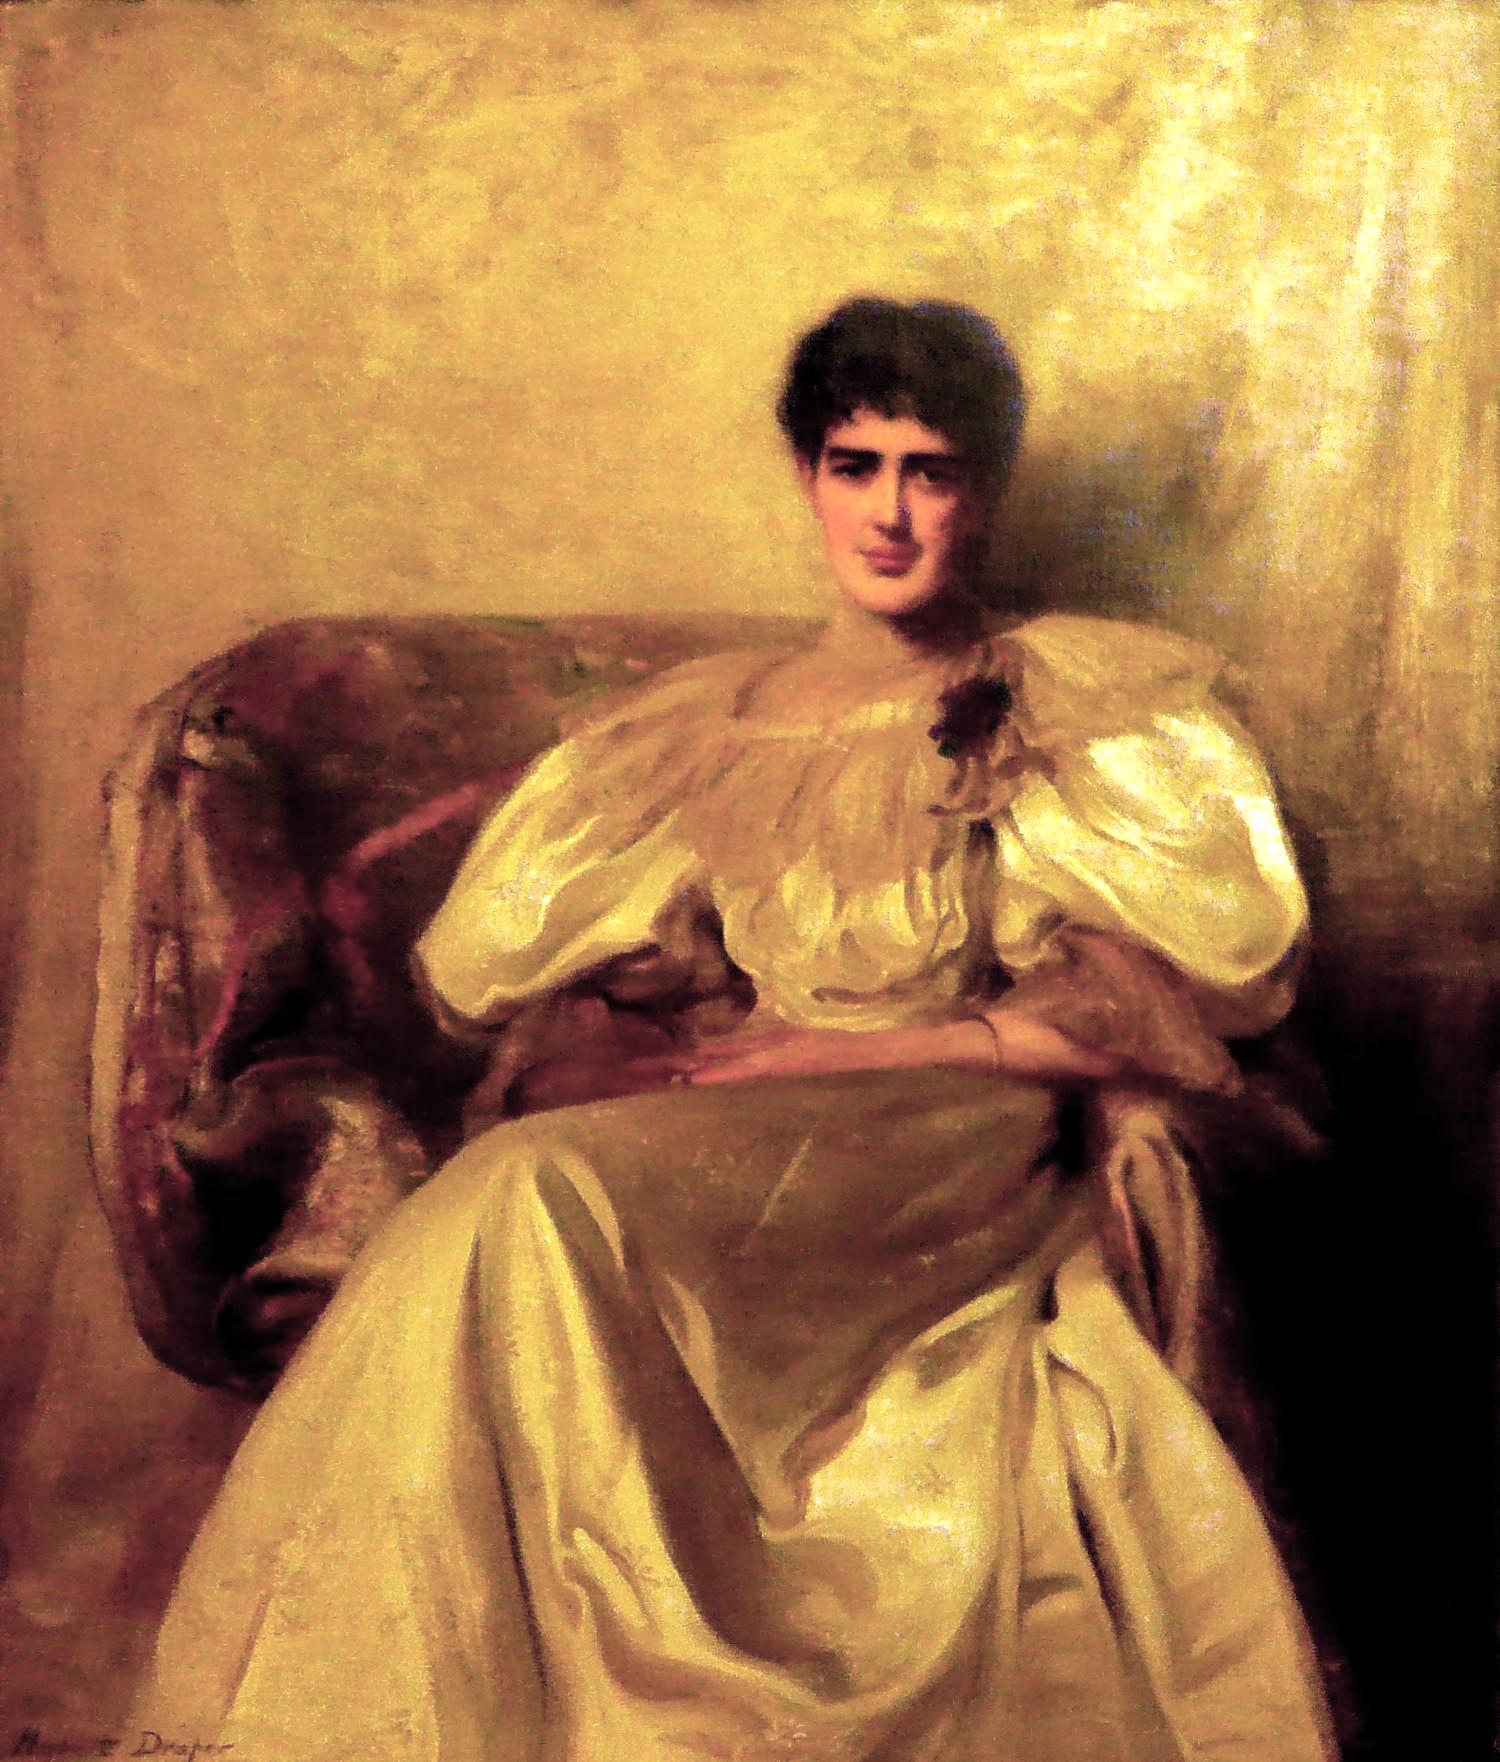 Herbert_James_Draper,_Portrait_of_Ida_Draper